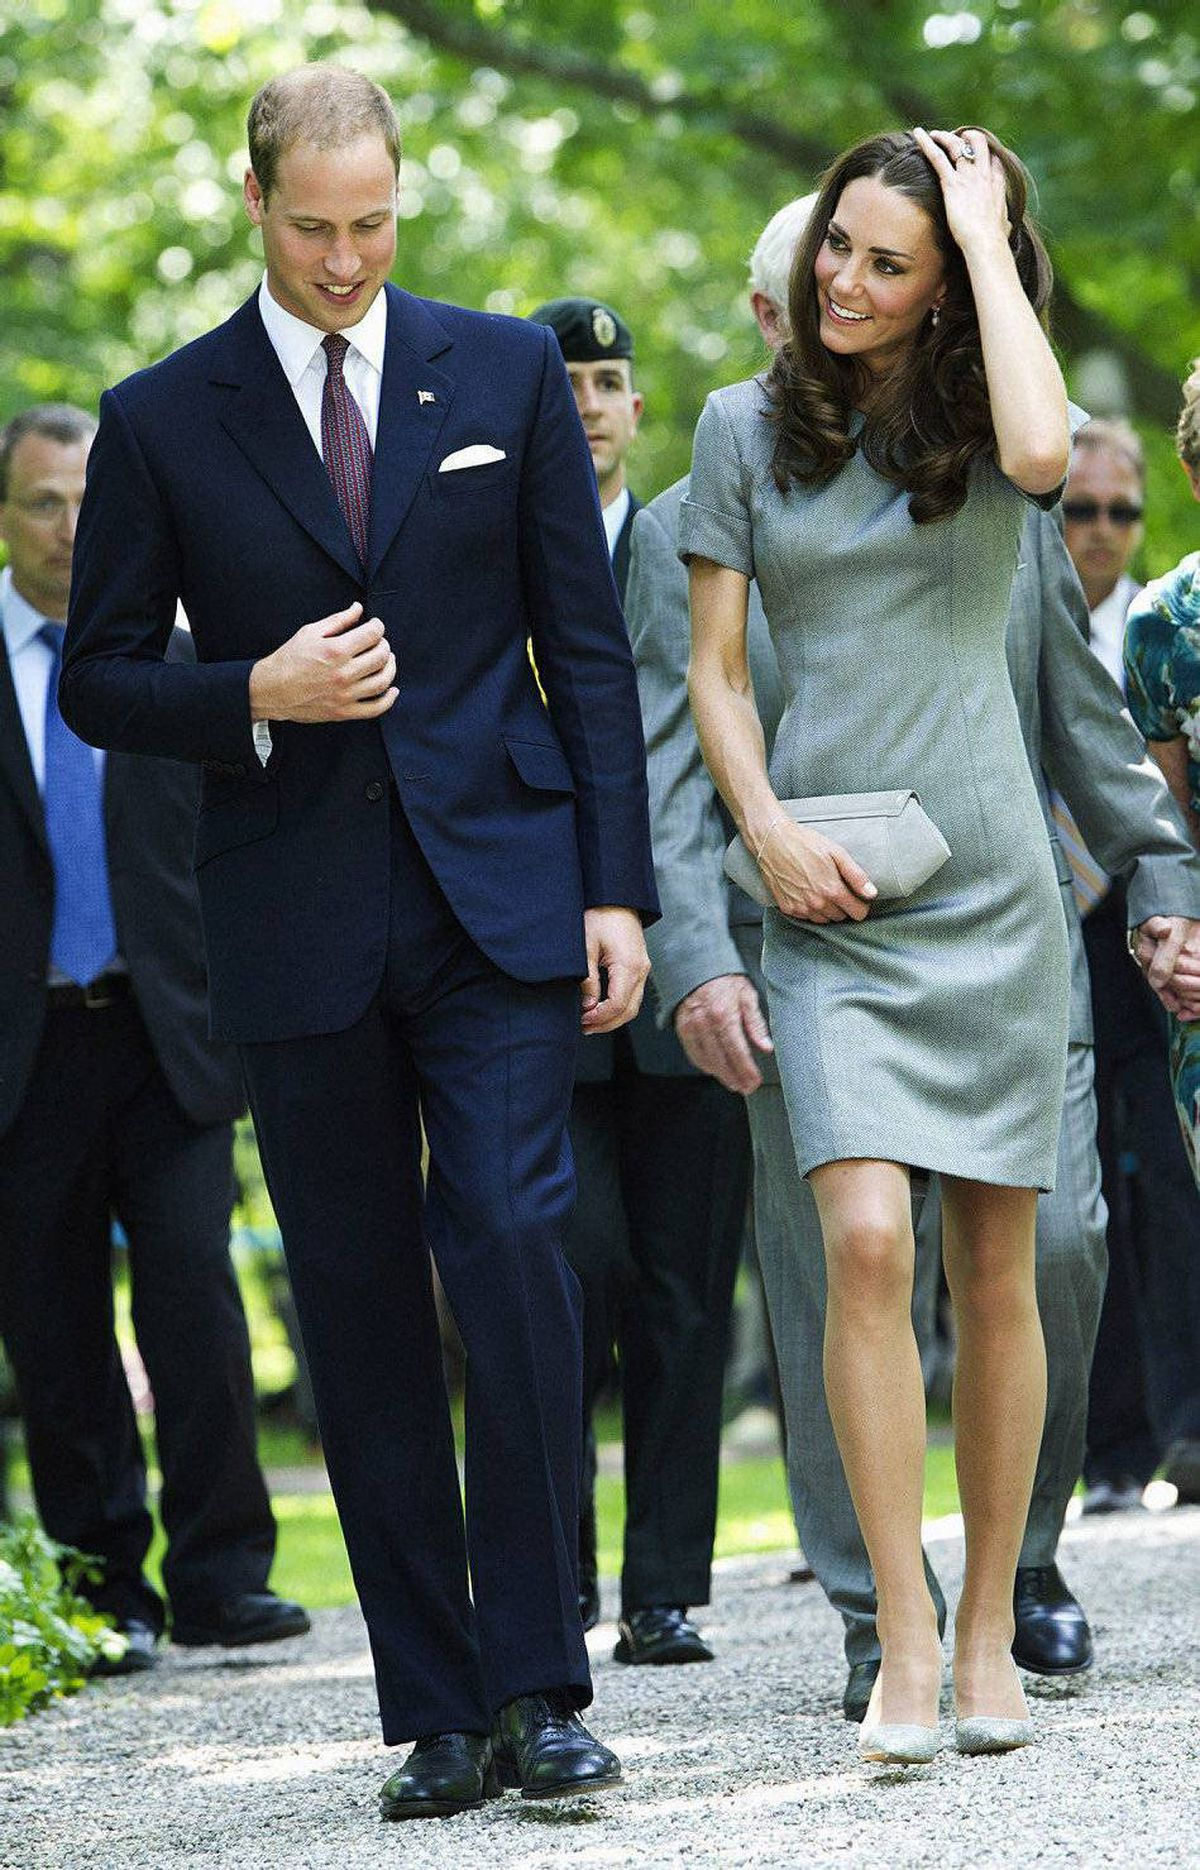 The Duke and Duchess of Cambridge leave after performing a ceremonial tree planting at Rideau Hall in Ottawa on Saturday, July 2, 2011.